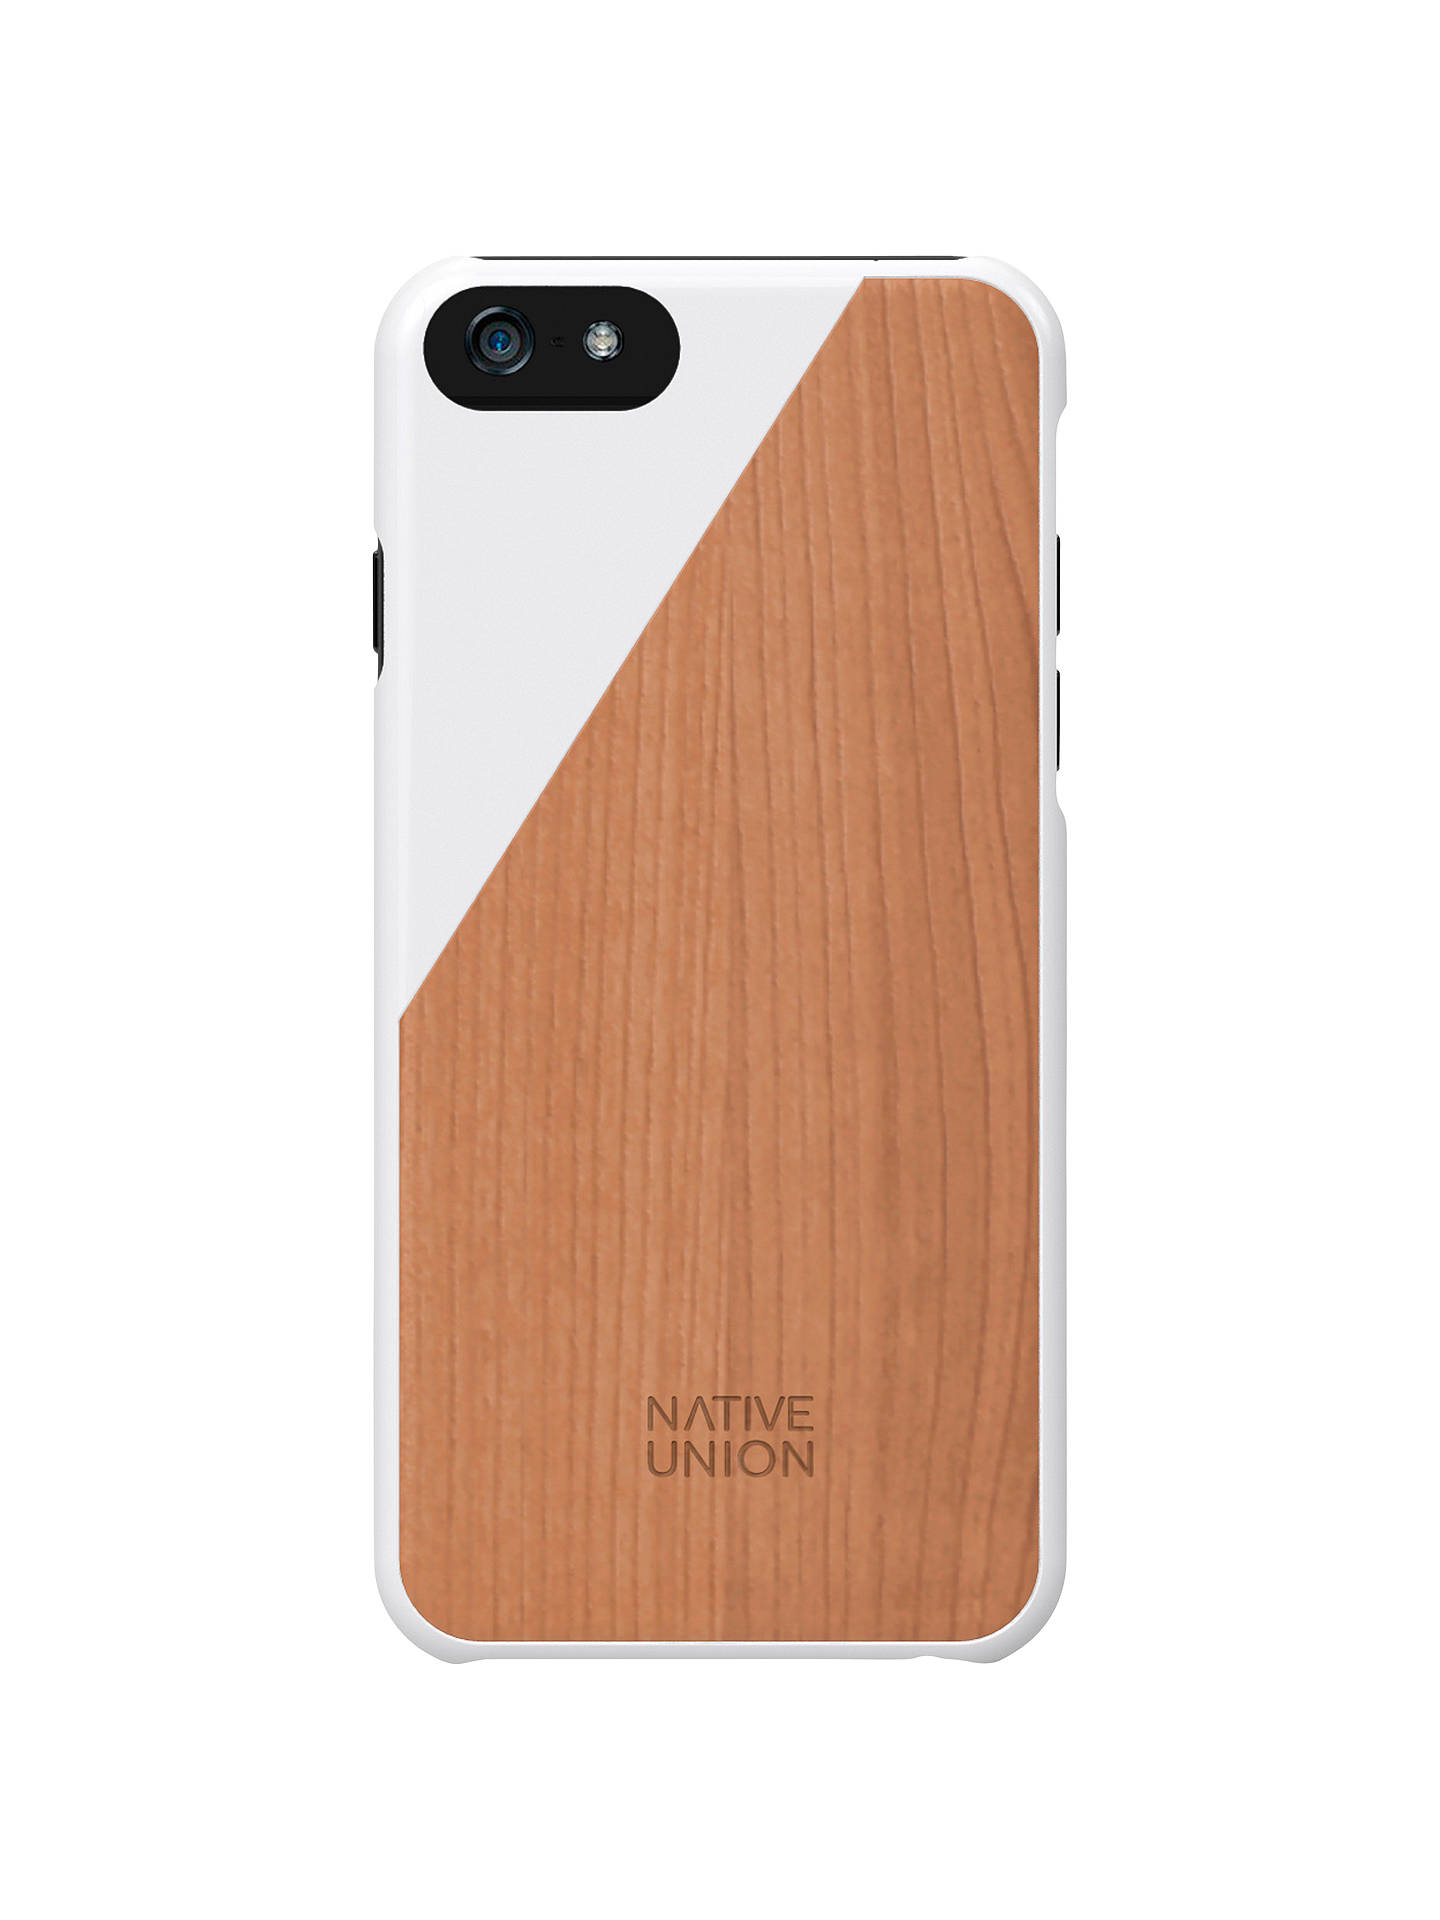 the best attitude b9bdc 6a09e Native Union Clic Wooden Case for iPhone 6 at John Lewis & Partners